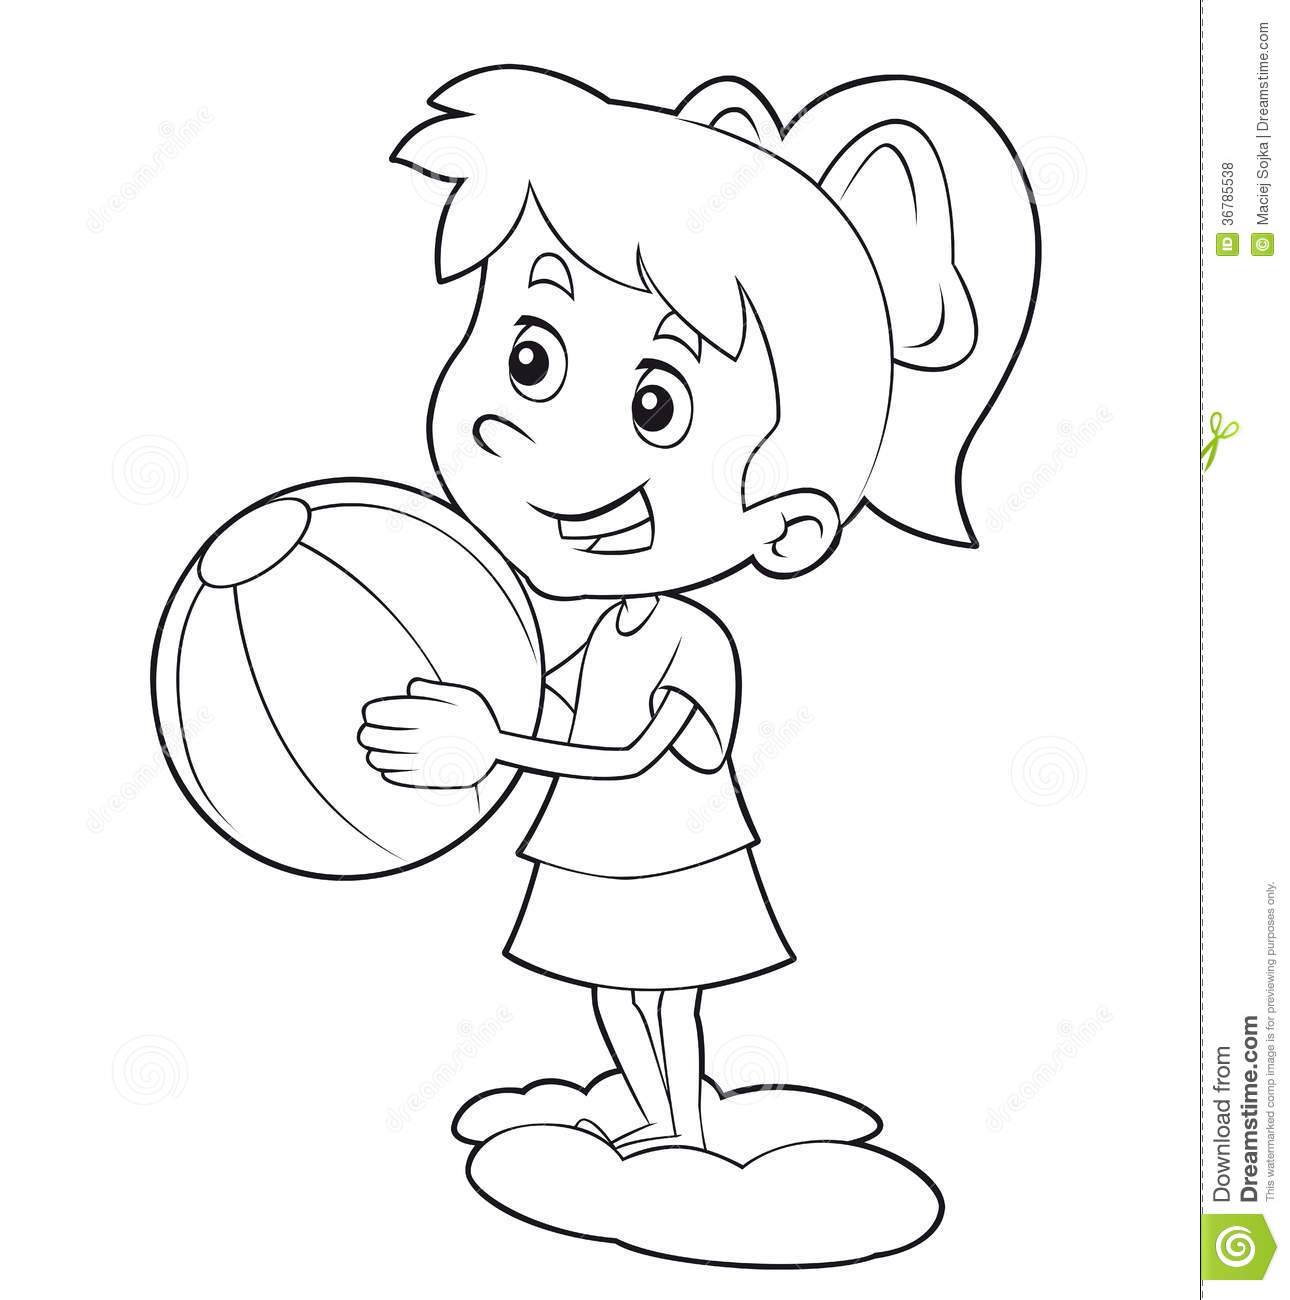 coloring page cartoon child having fun illustration for the